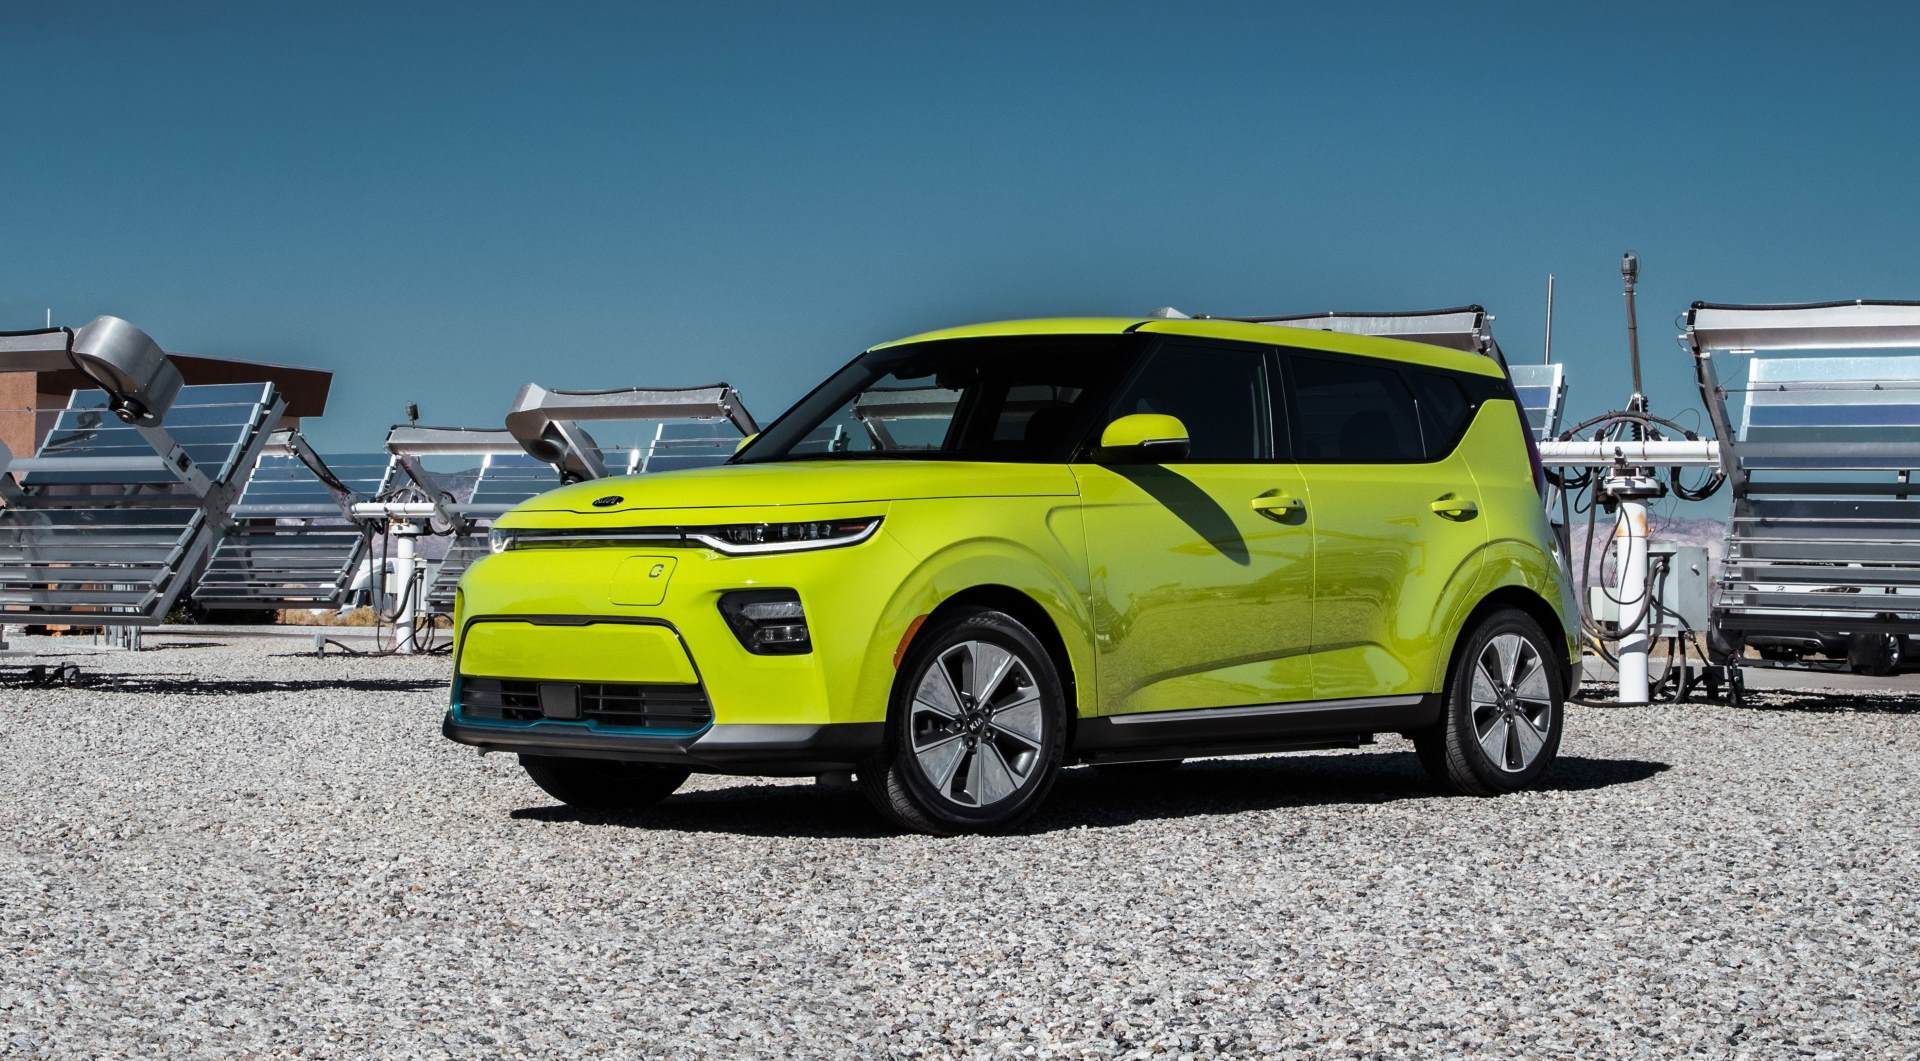 New Kia Soul Gets Official Epa Range Of 243 Miles 391 Km Charts